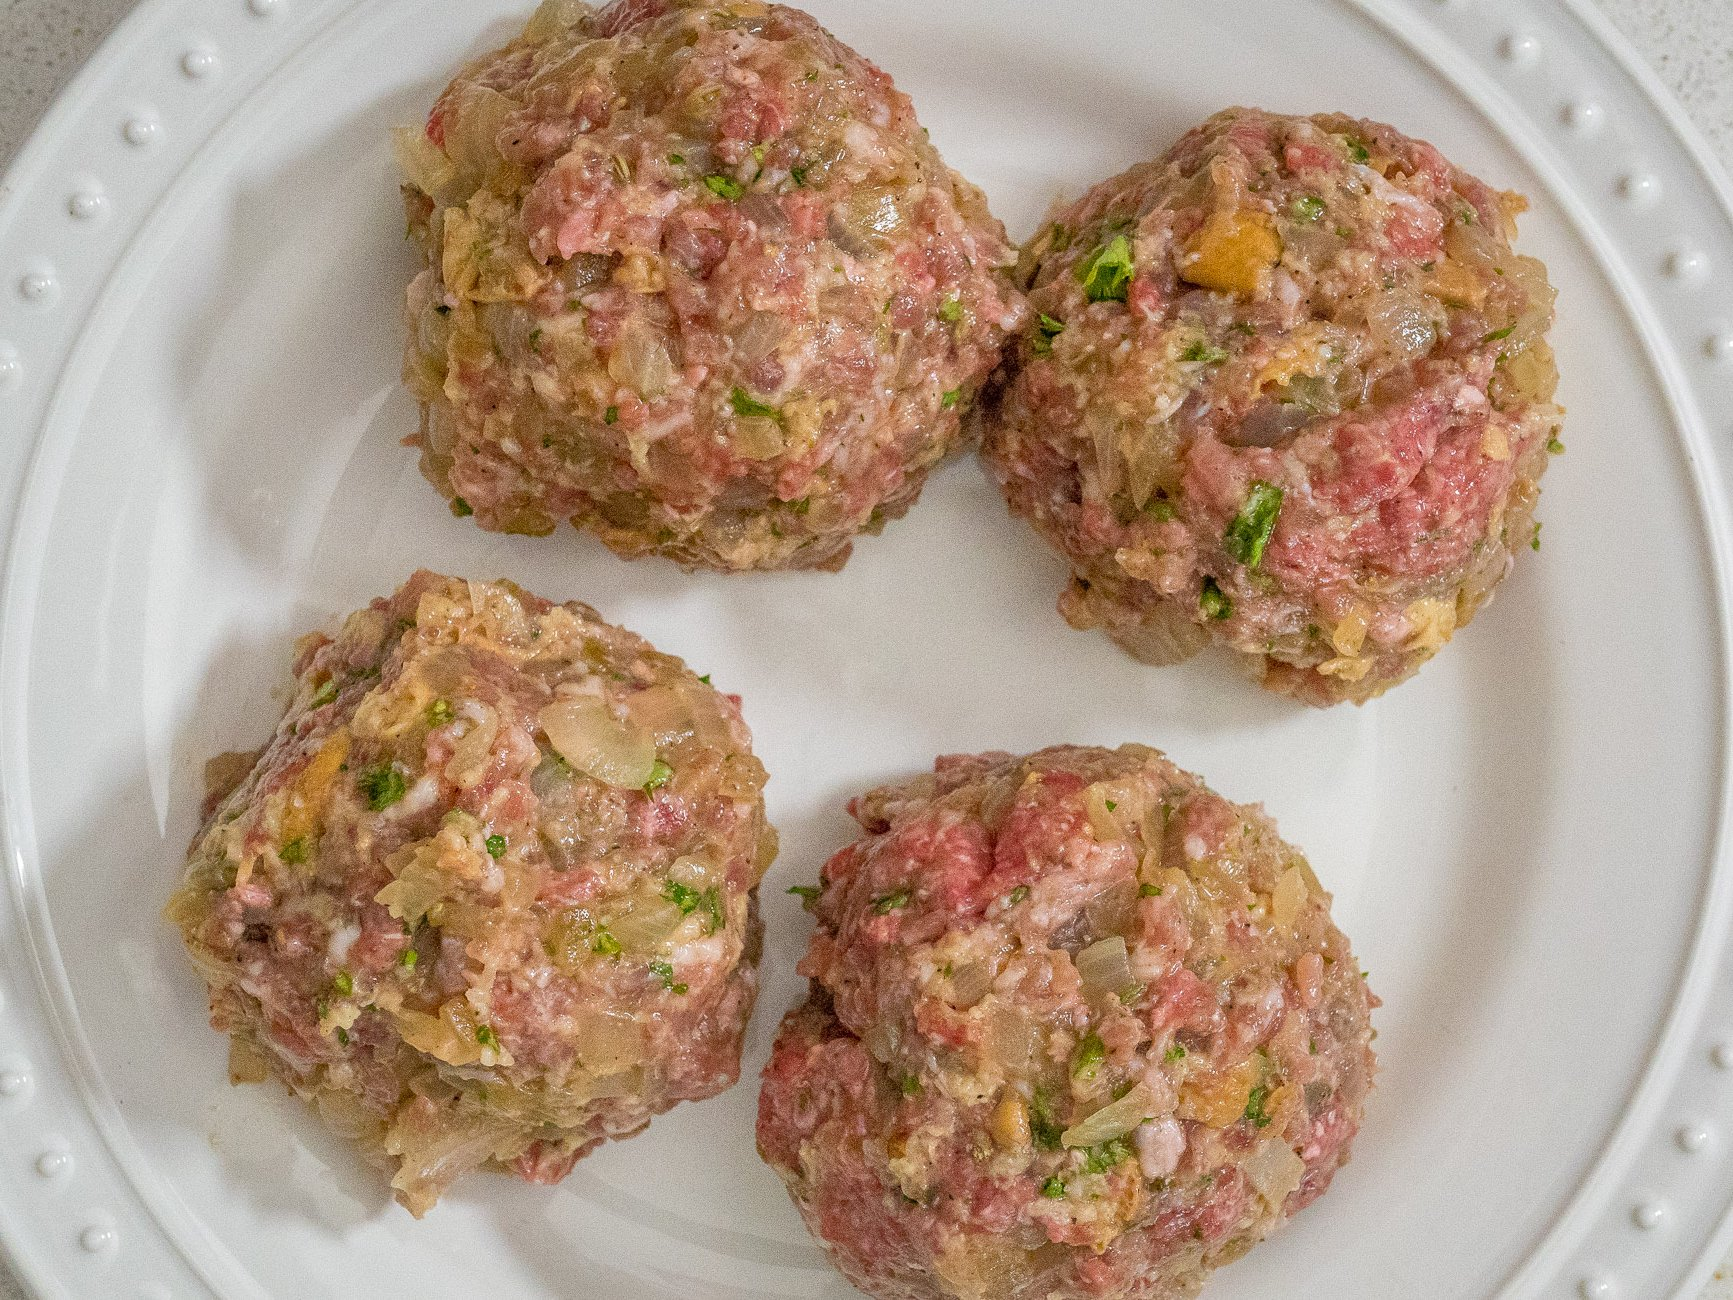 Knead mixture until completely blended. Divide into 4 equal parts and shape into balls. Then slightly flatten the frikadellen into patties. Chill patties for 30 minutes.